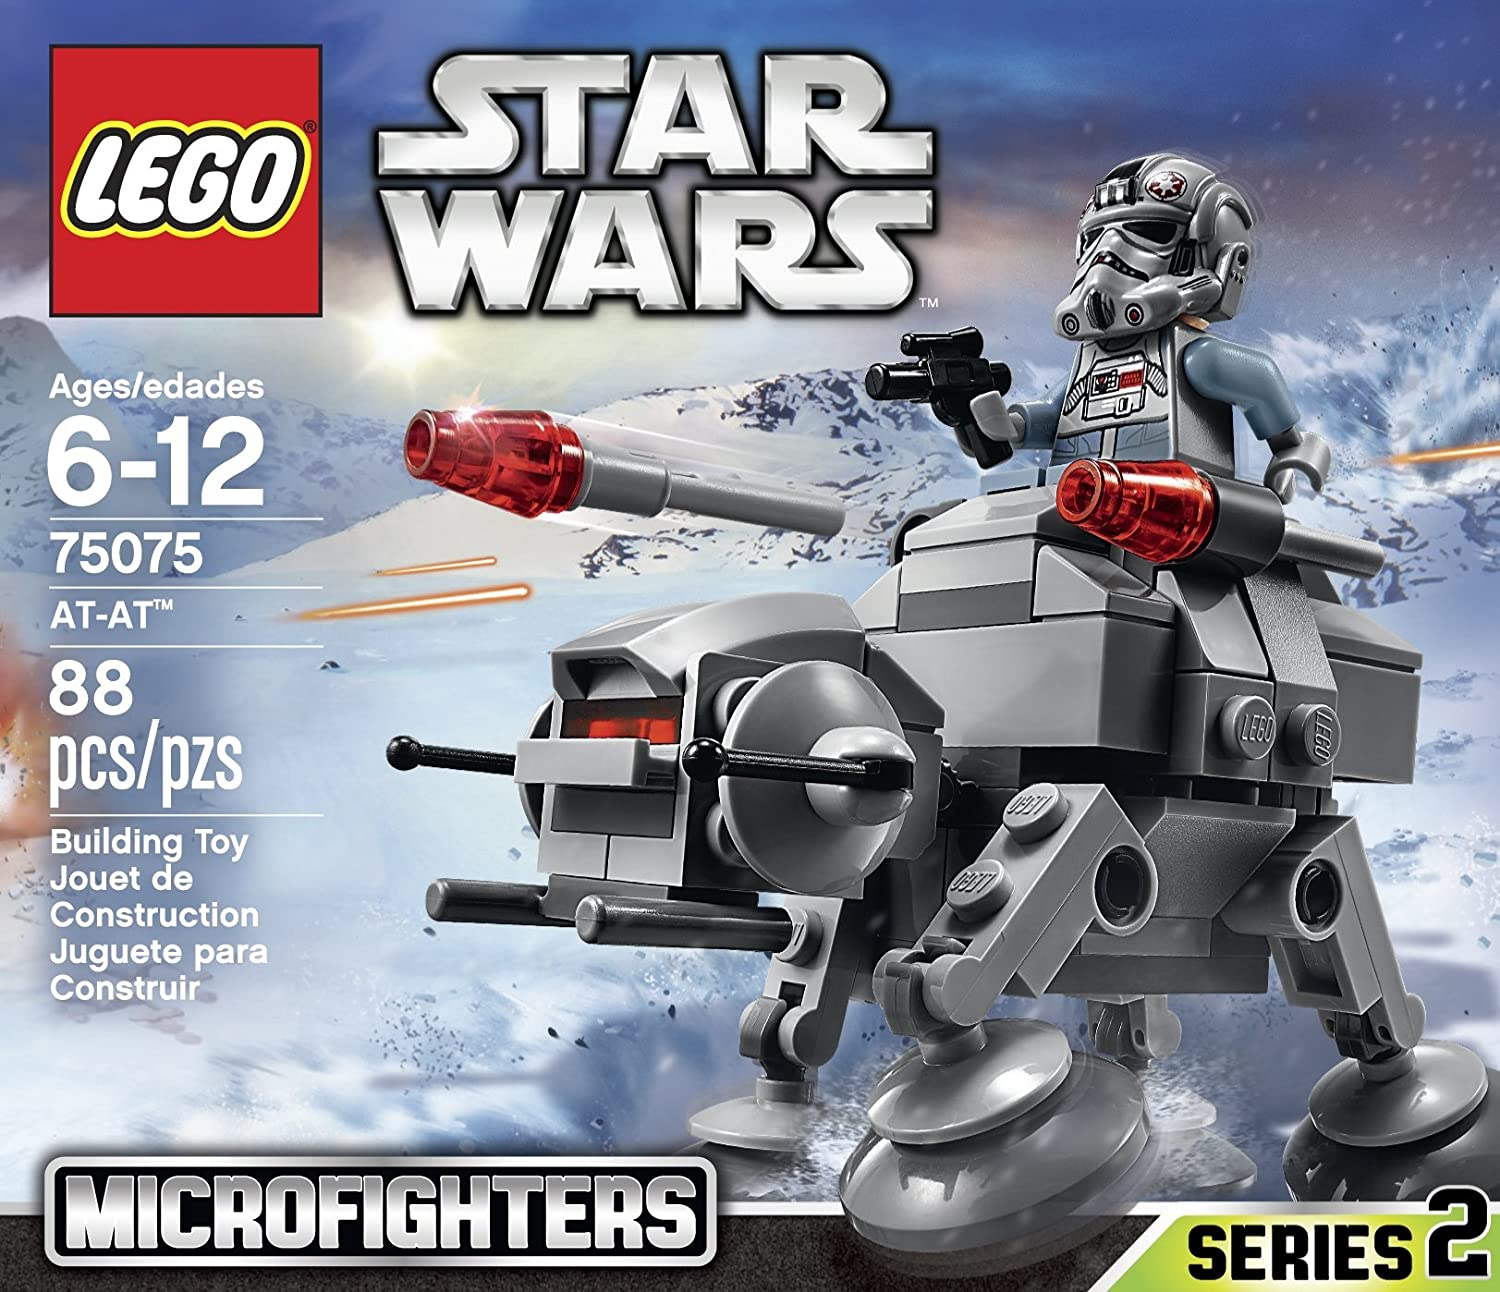 LEGO Star Wars At At Toy Playsets Amazon Canada